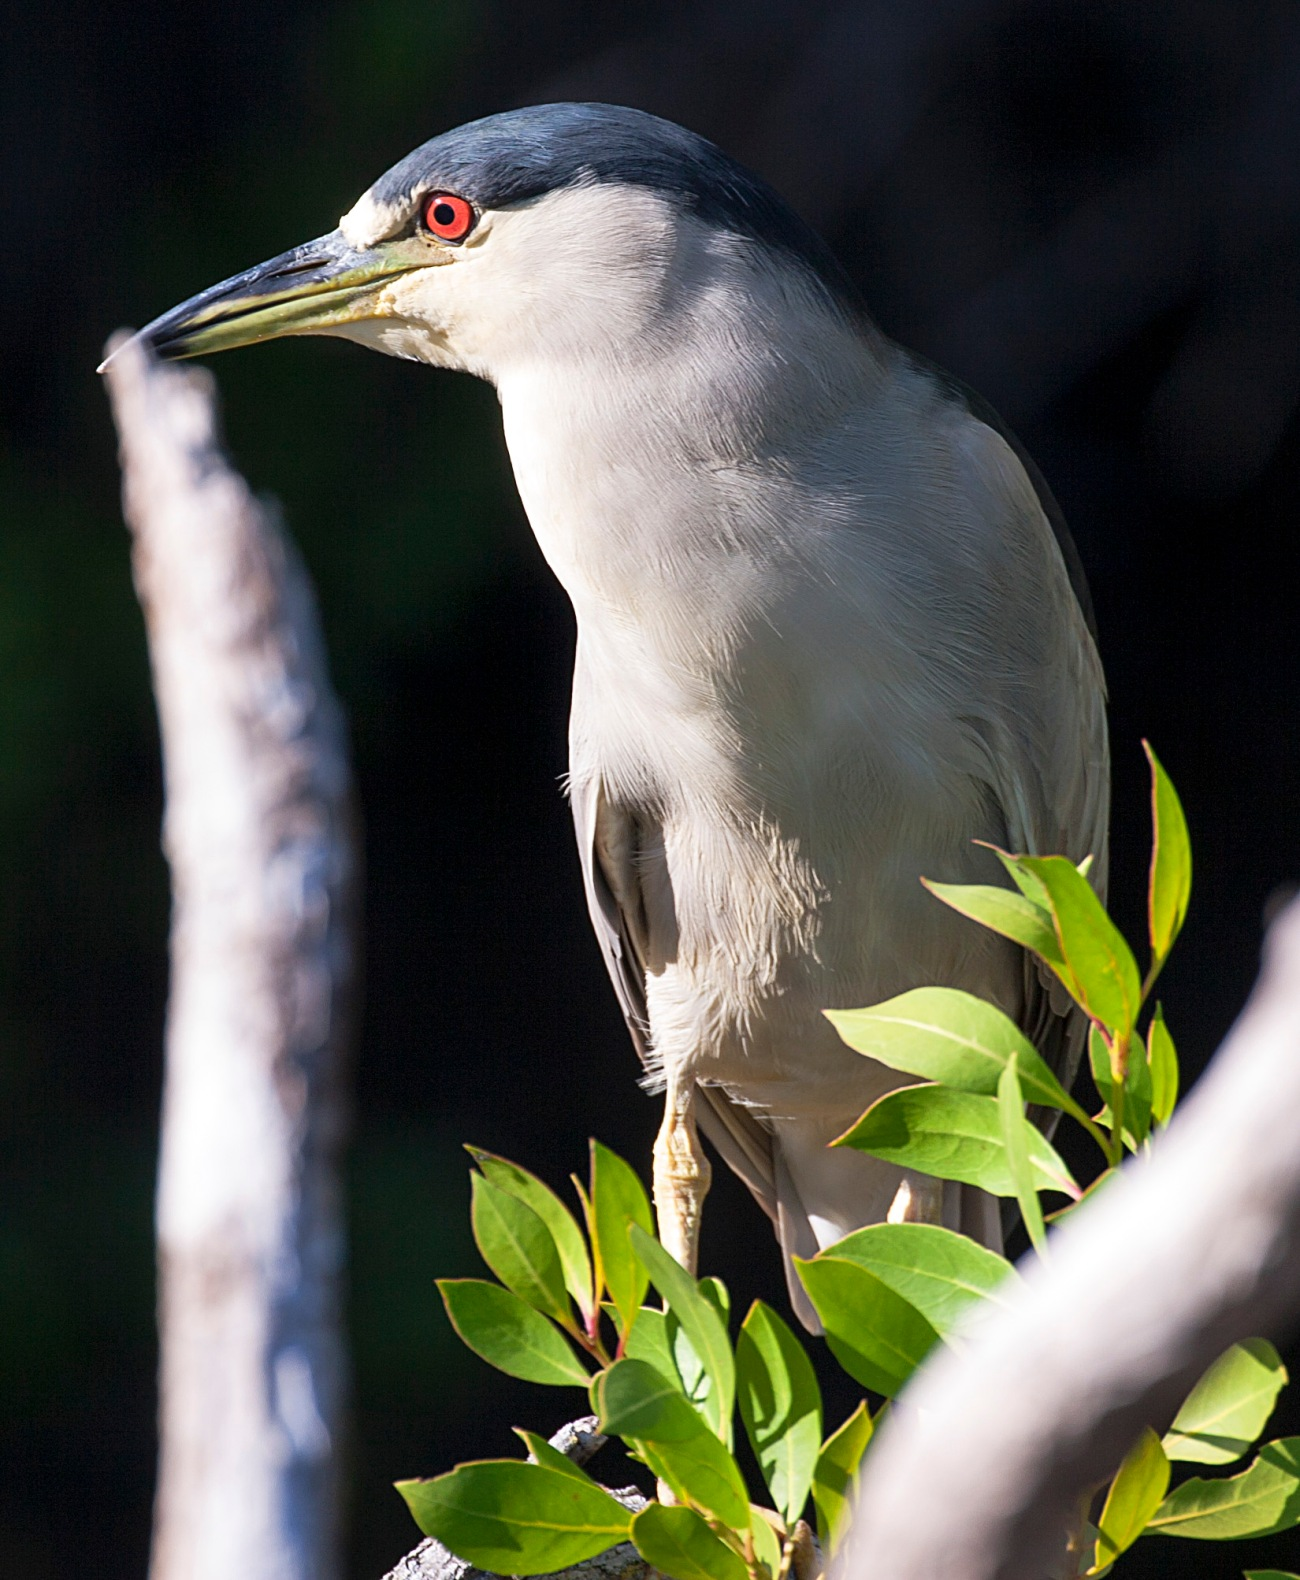 20161127_110130_Night Heron